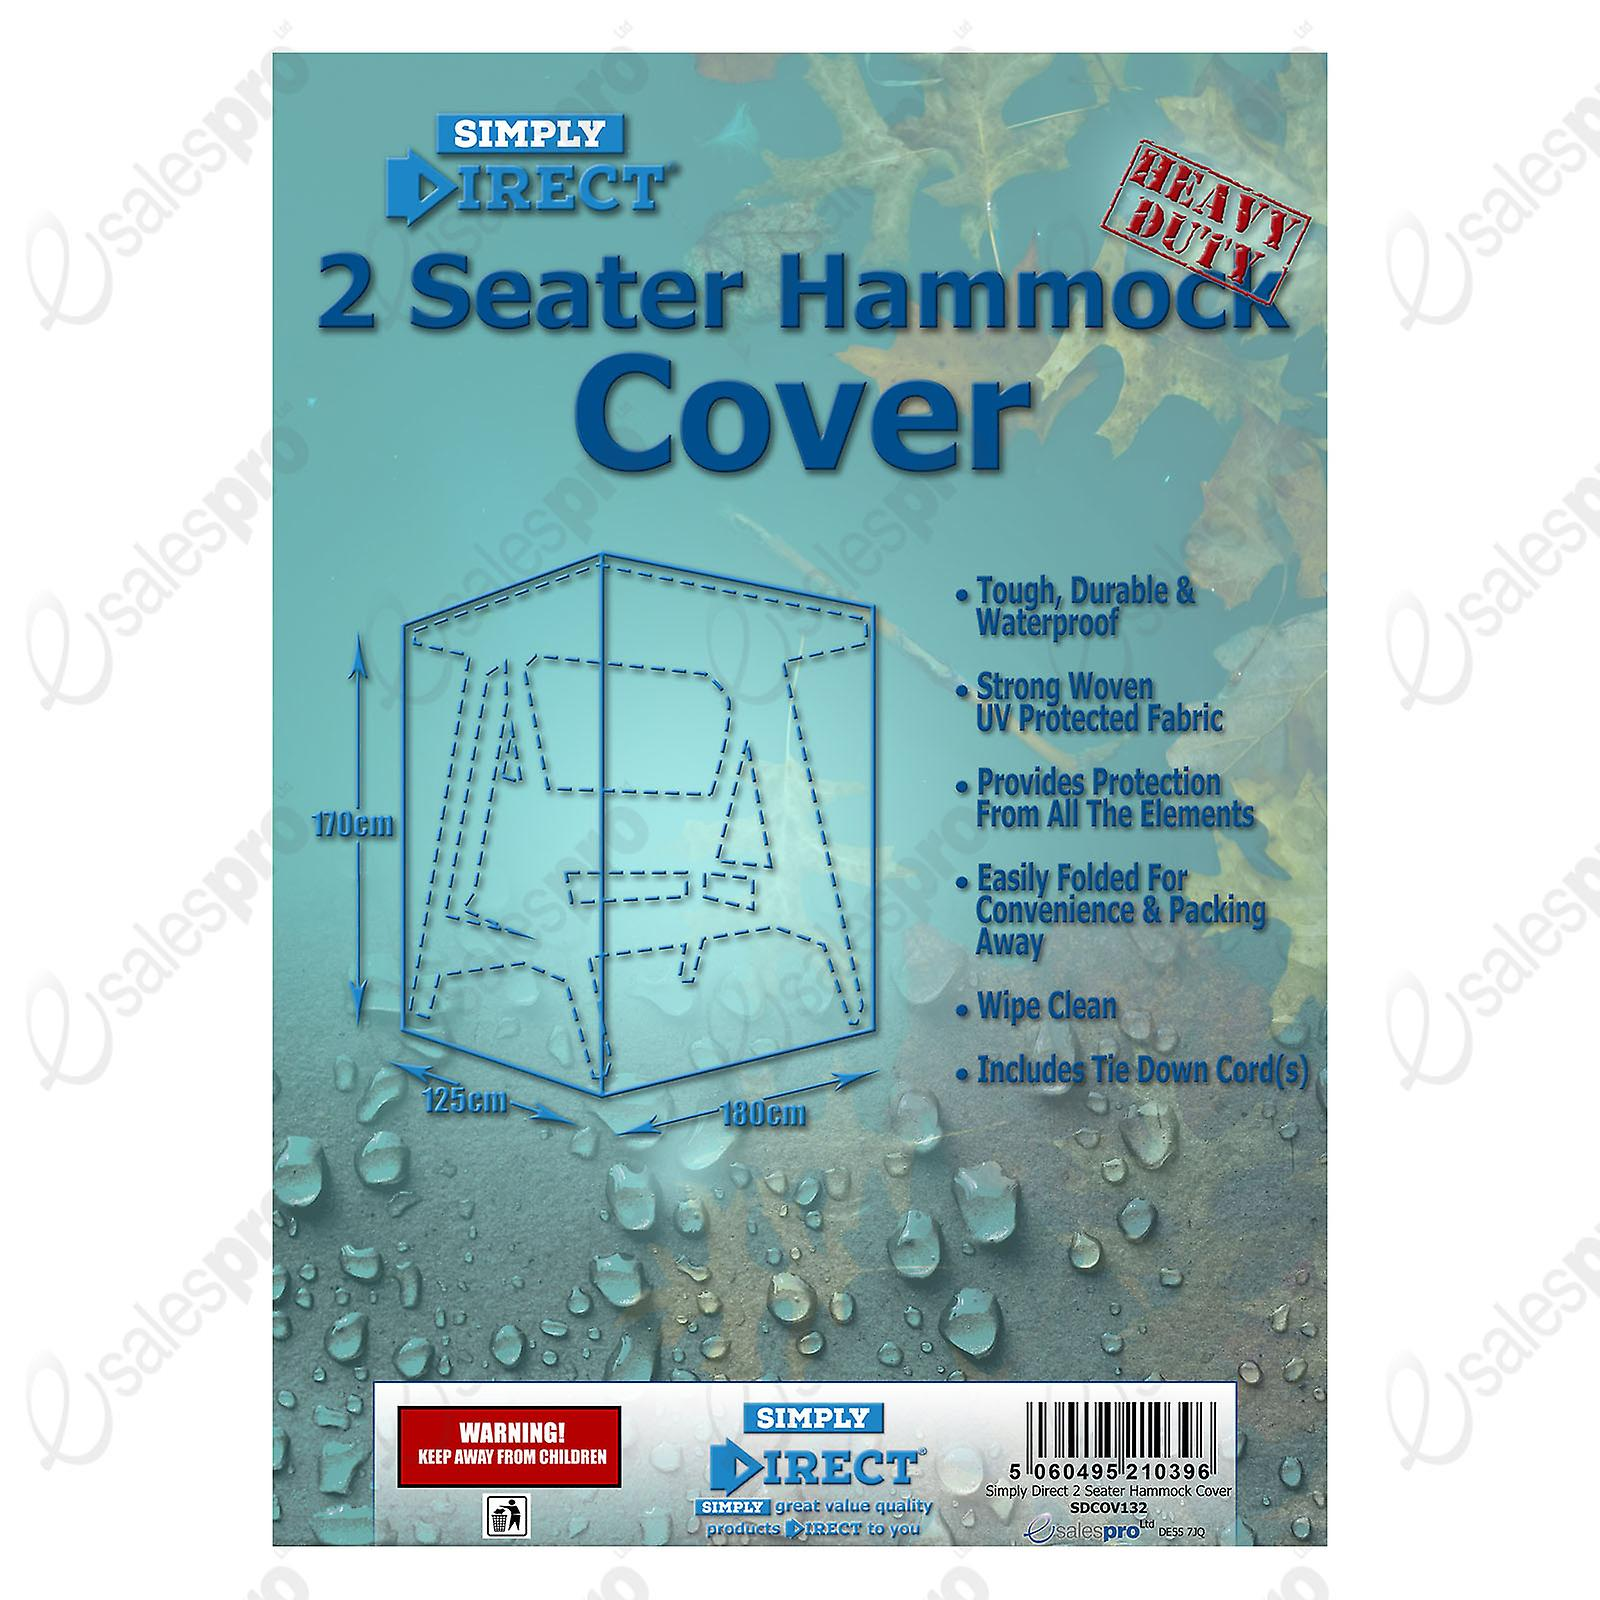 2 Furniture Protector Direct CoverWaterproof Weatherproof Seater Simply Hammock qUSMpLVjzG